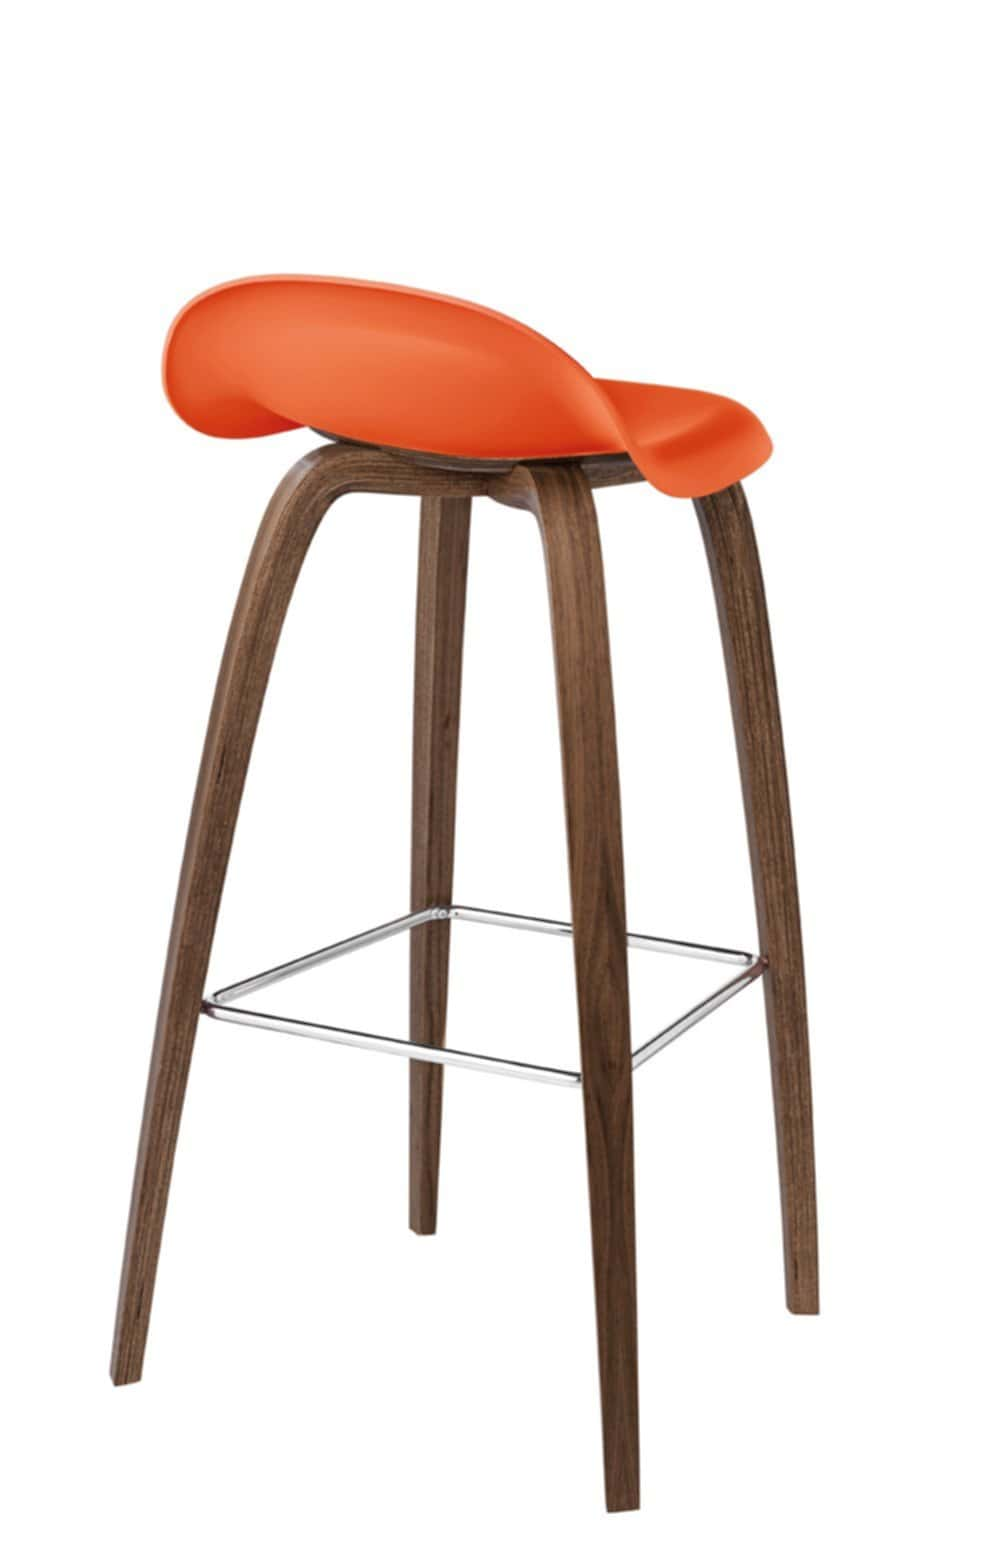 With Wooden Bar Stools Backs The Sweet Roll